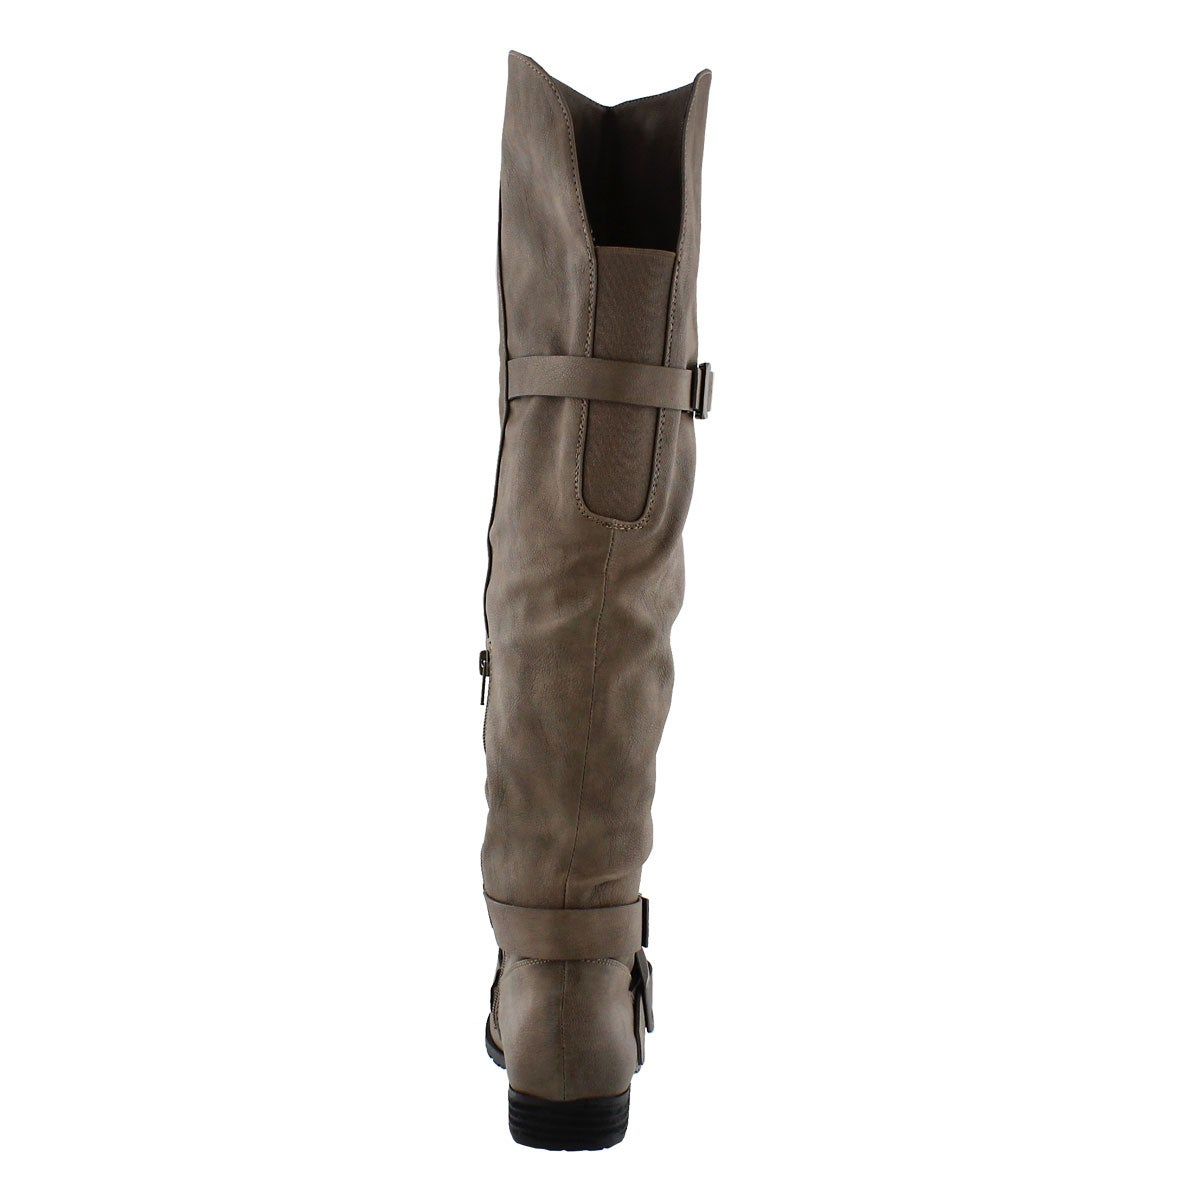 Lds Braelynn grey over the knee boot